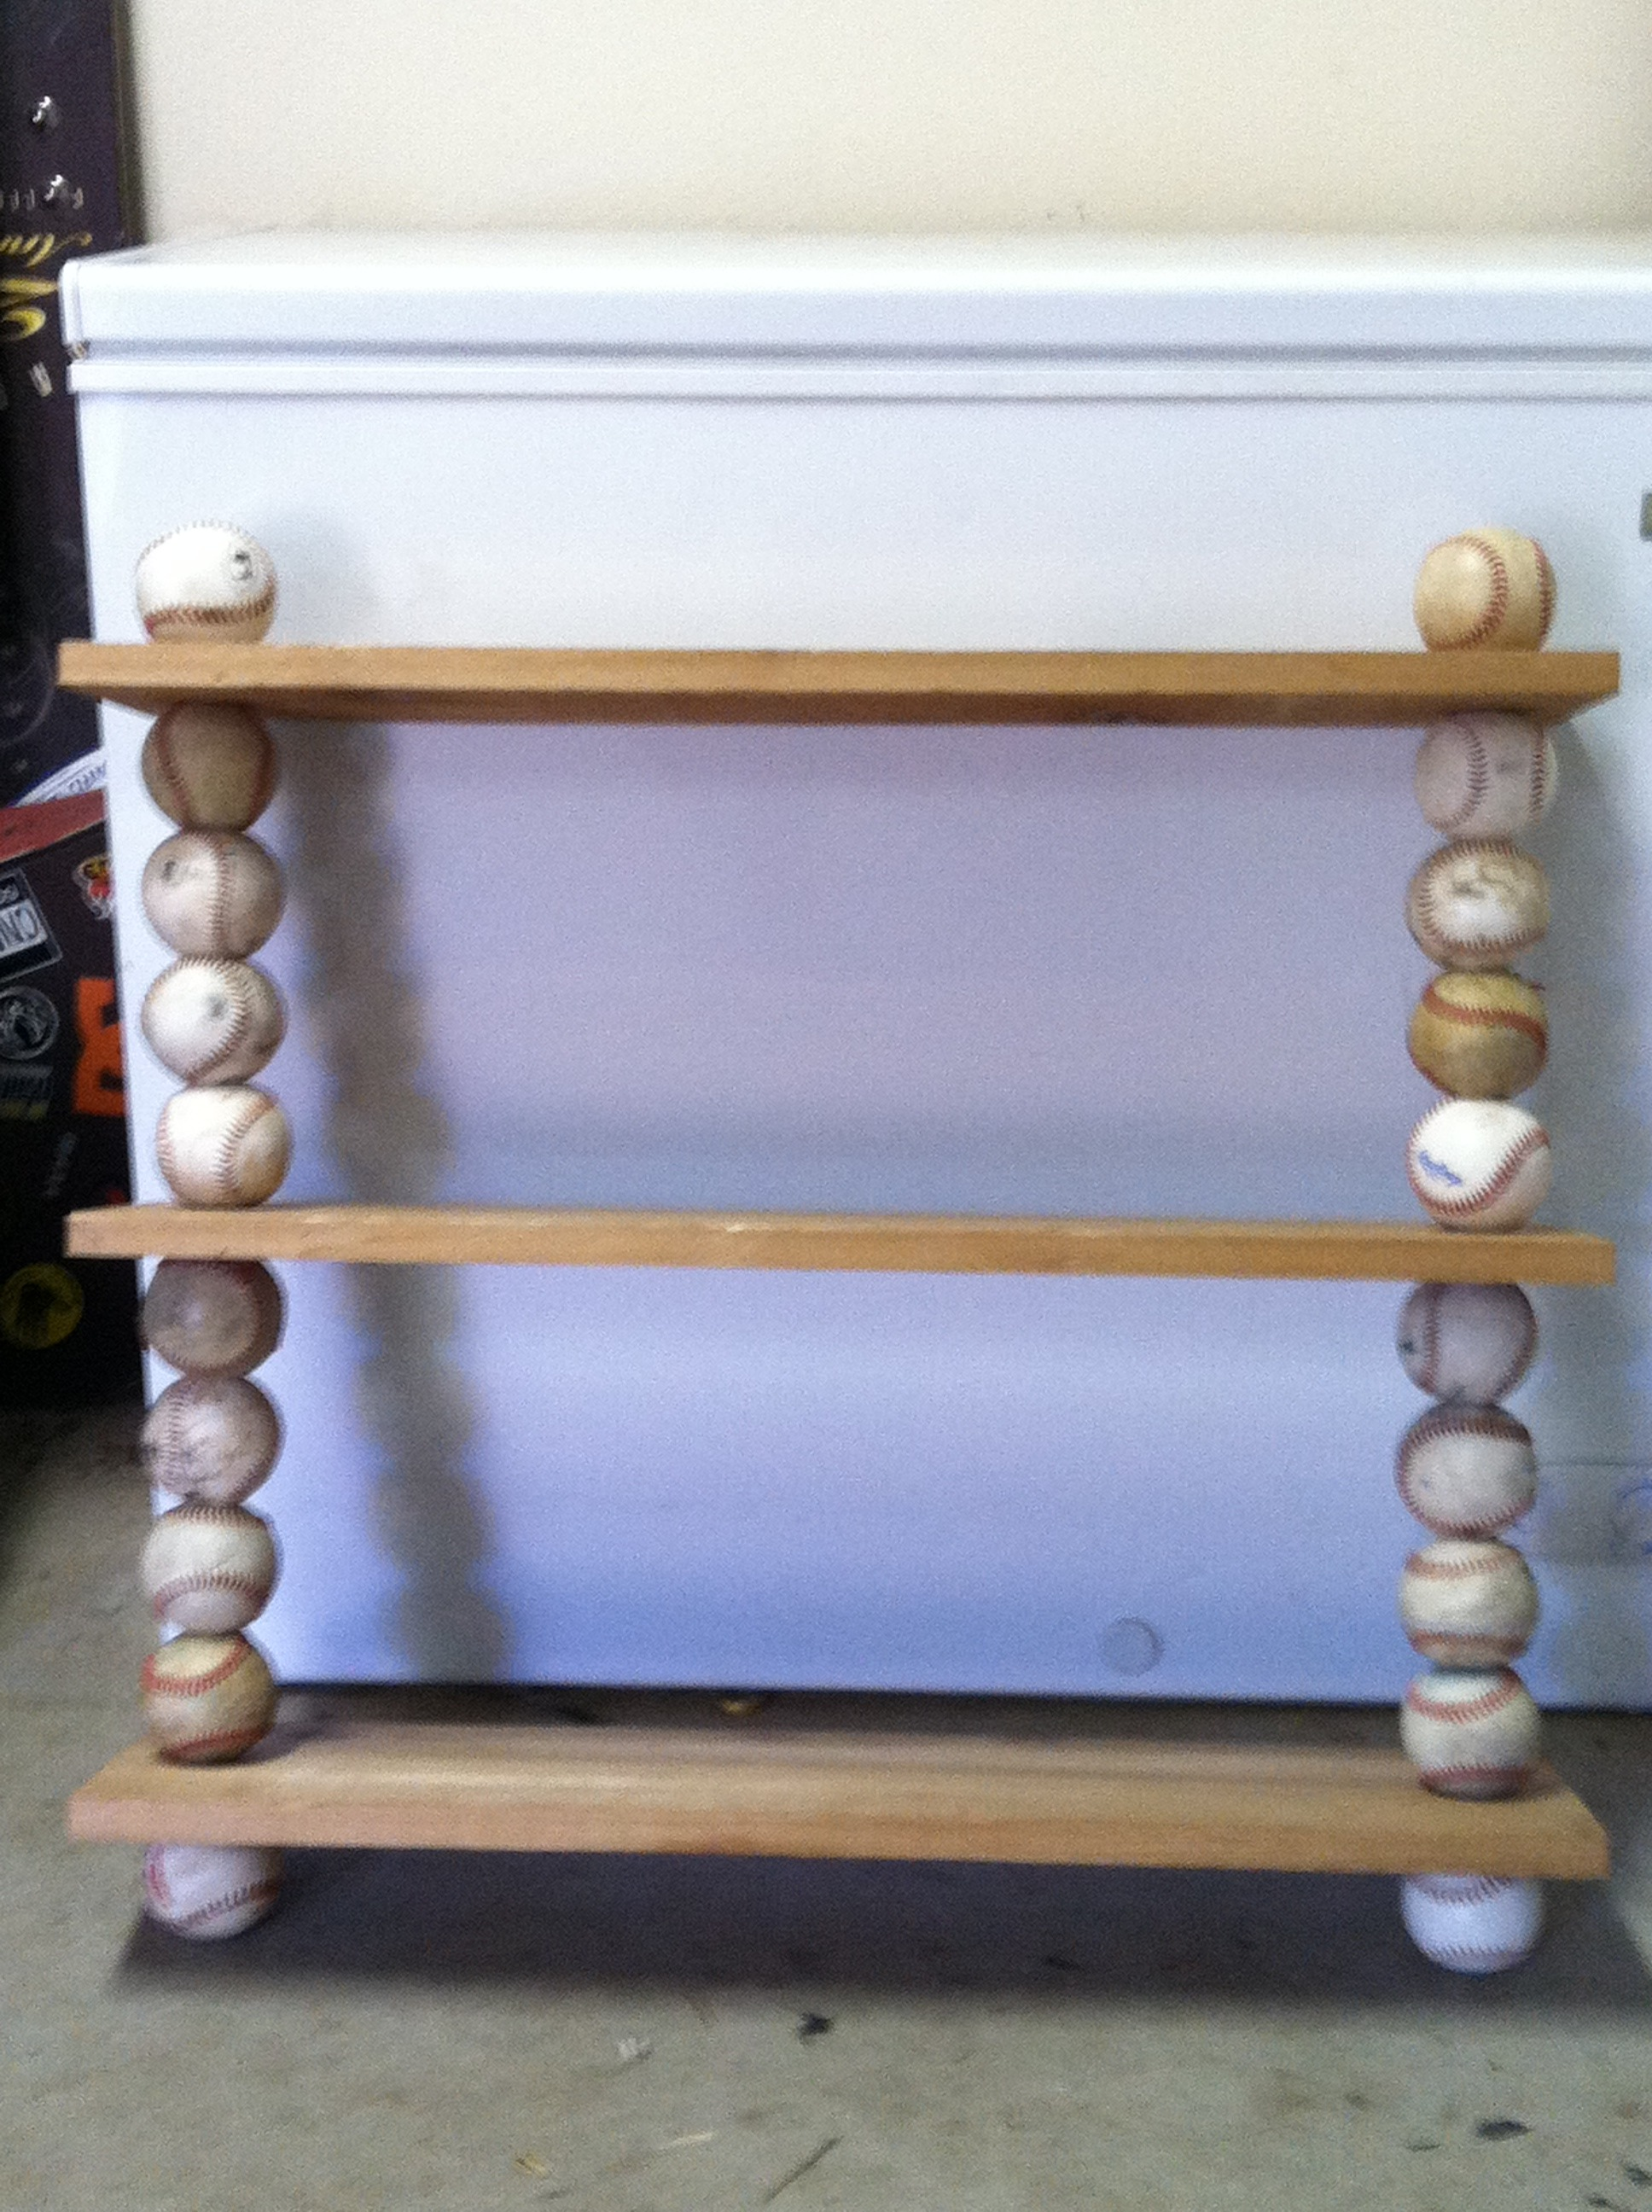 Picture of Baseball Shelf